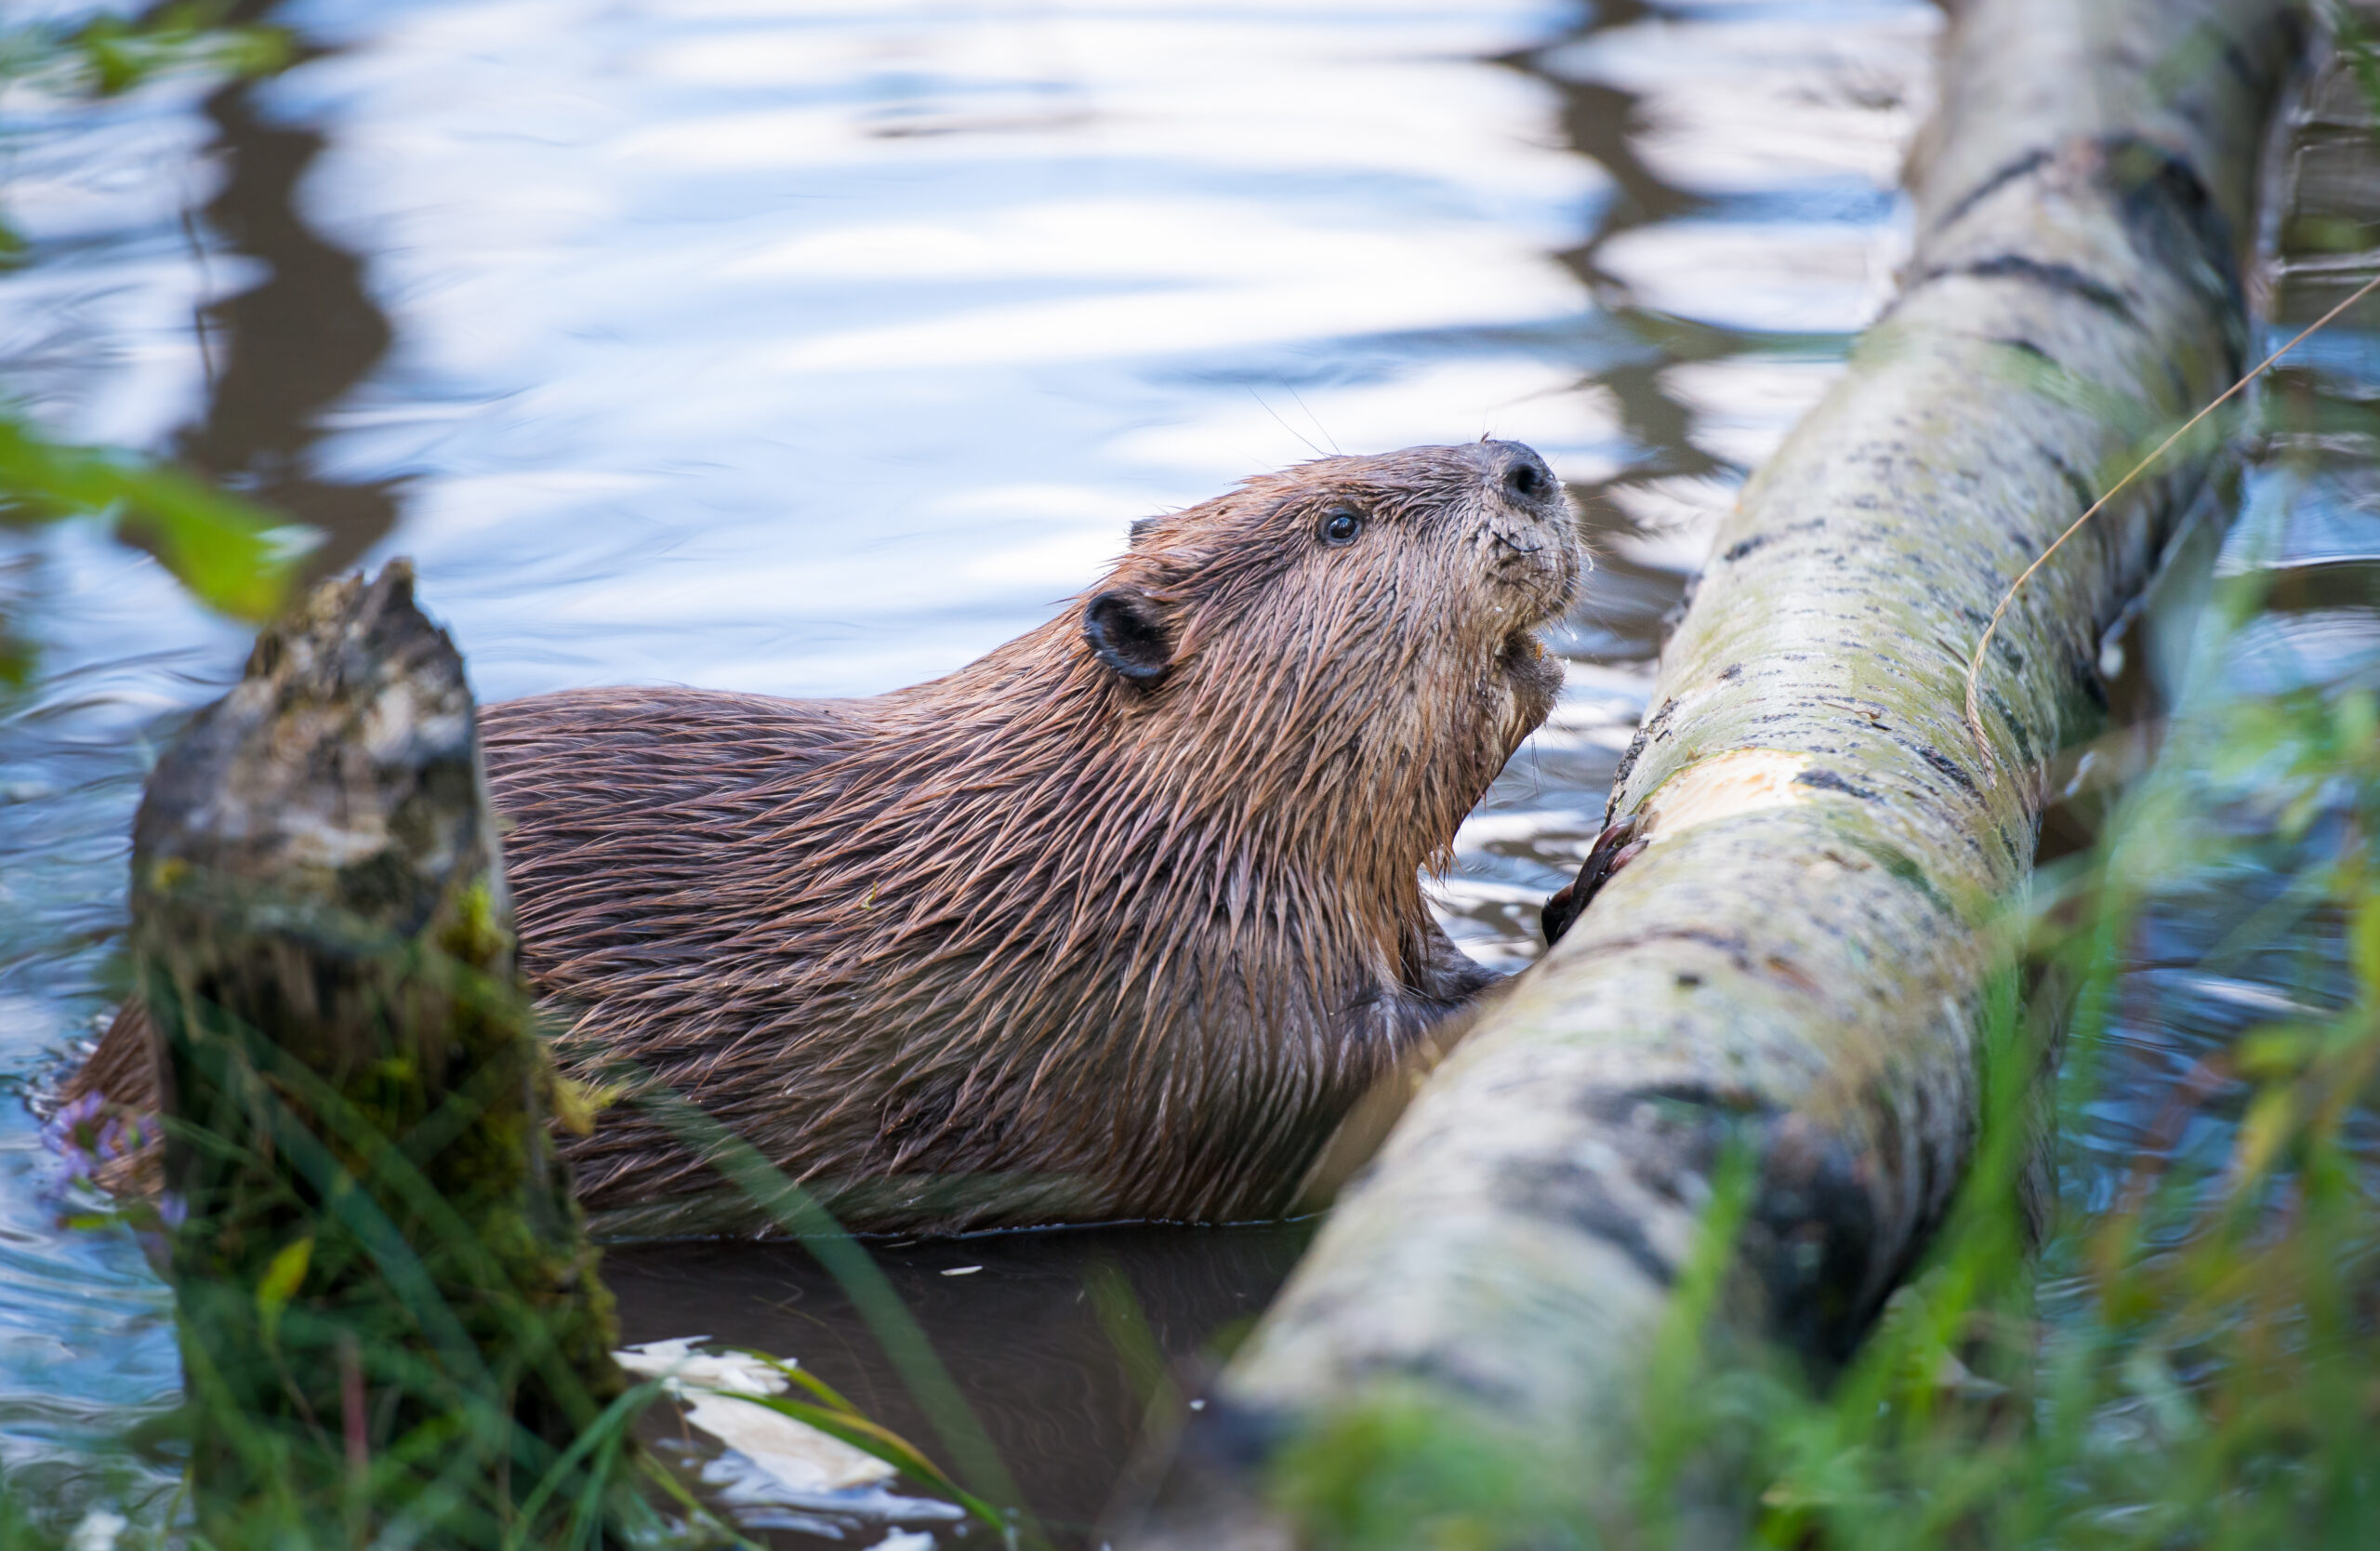 Exmoor beavers: The heroes we need right now?